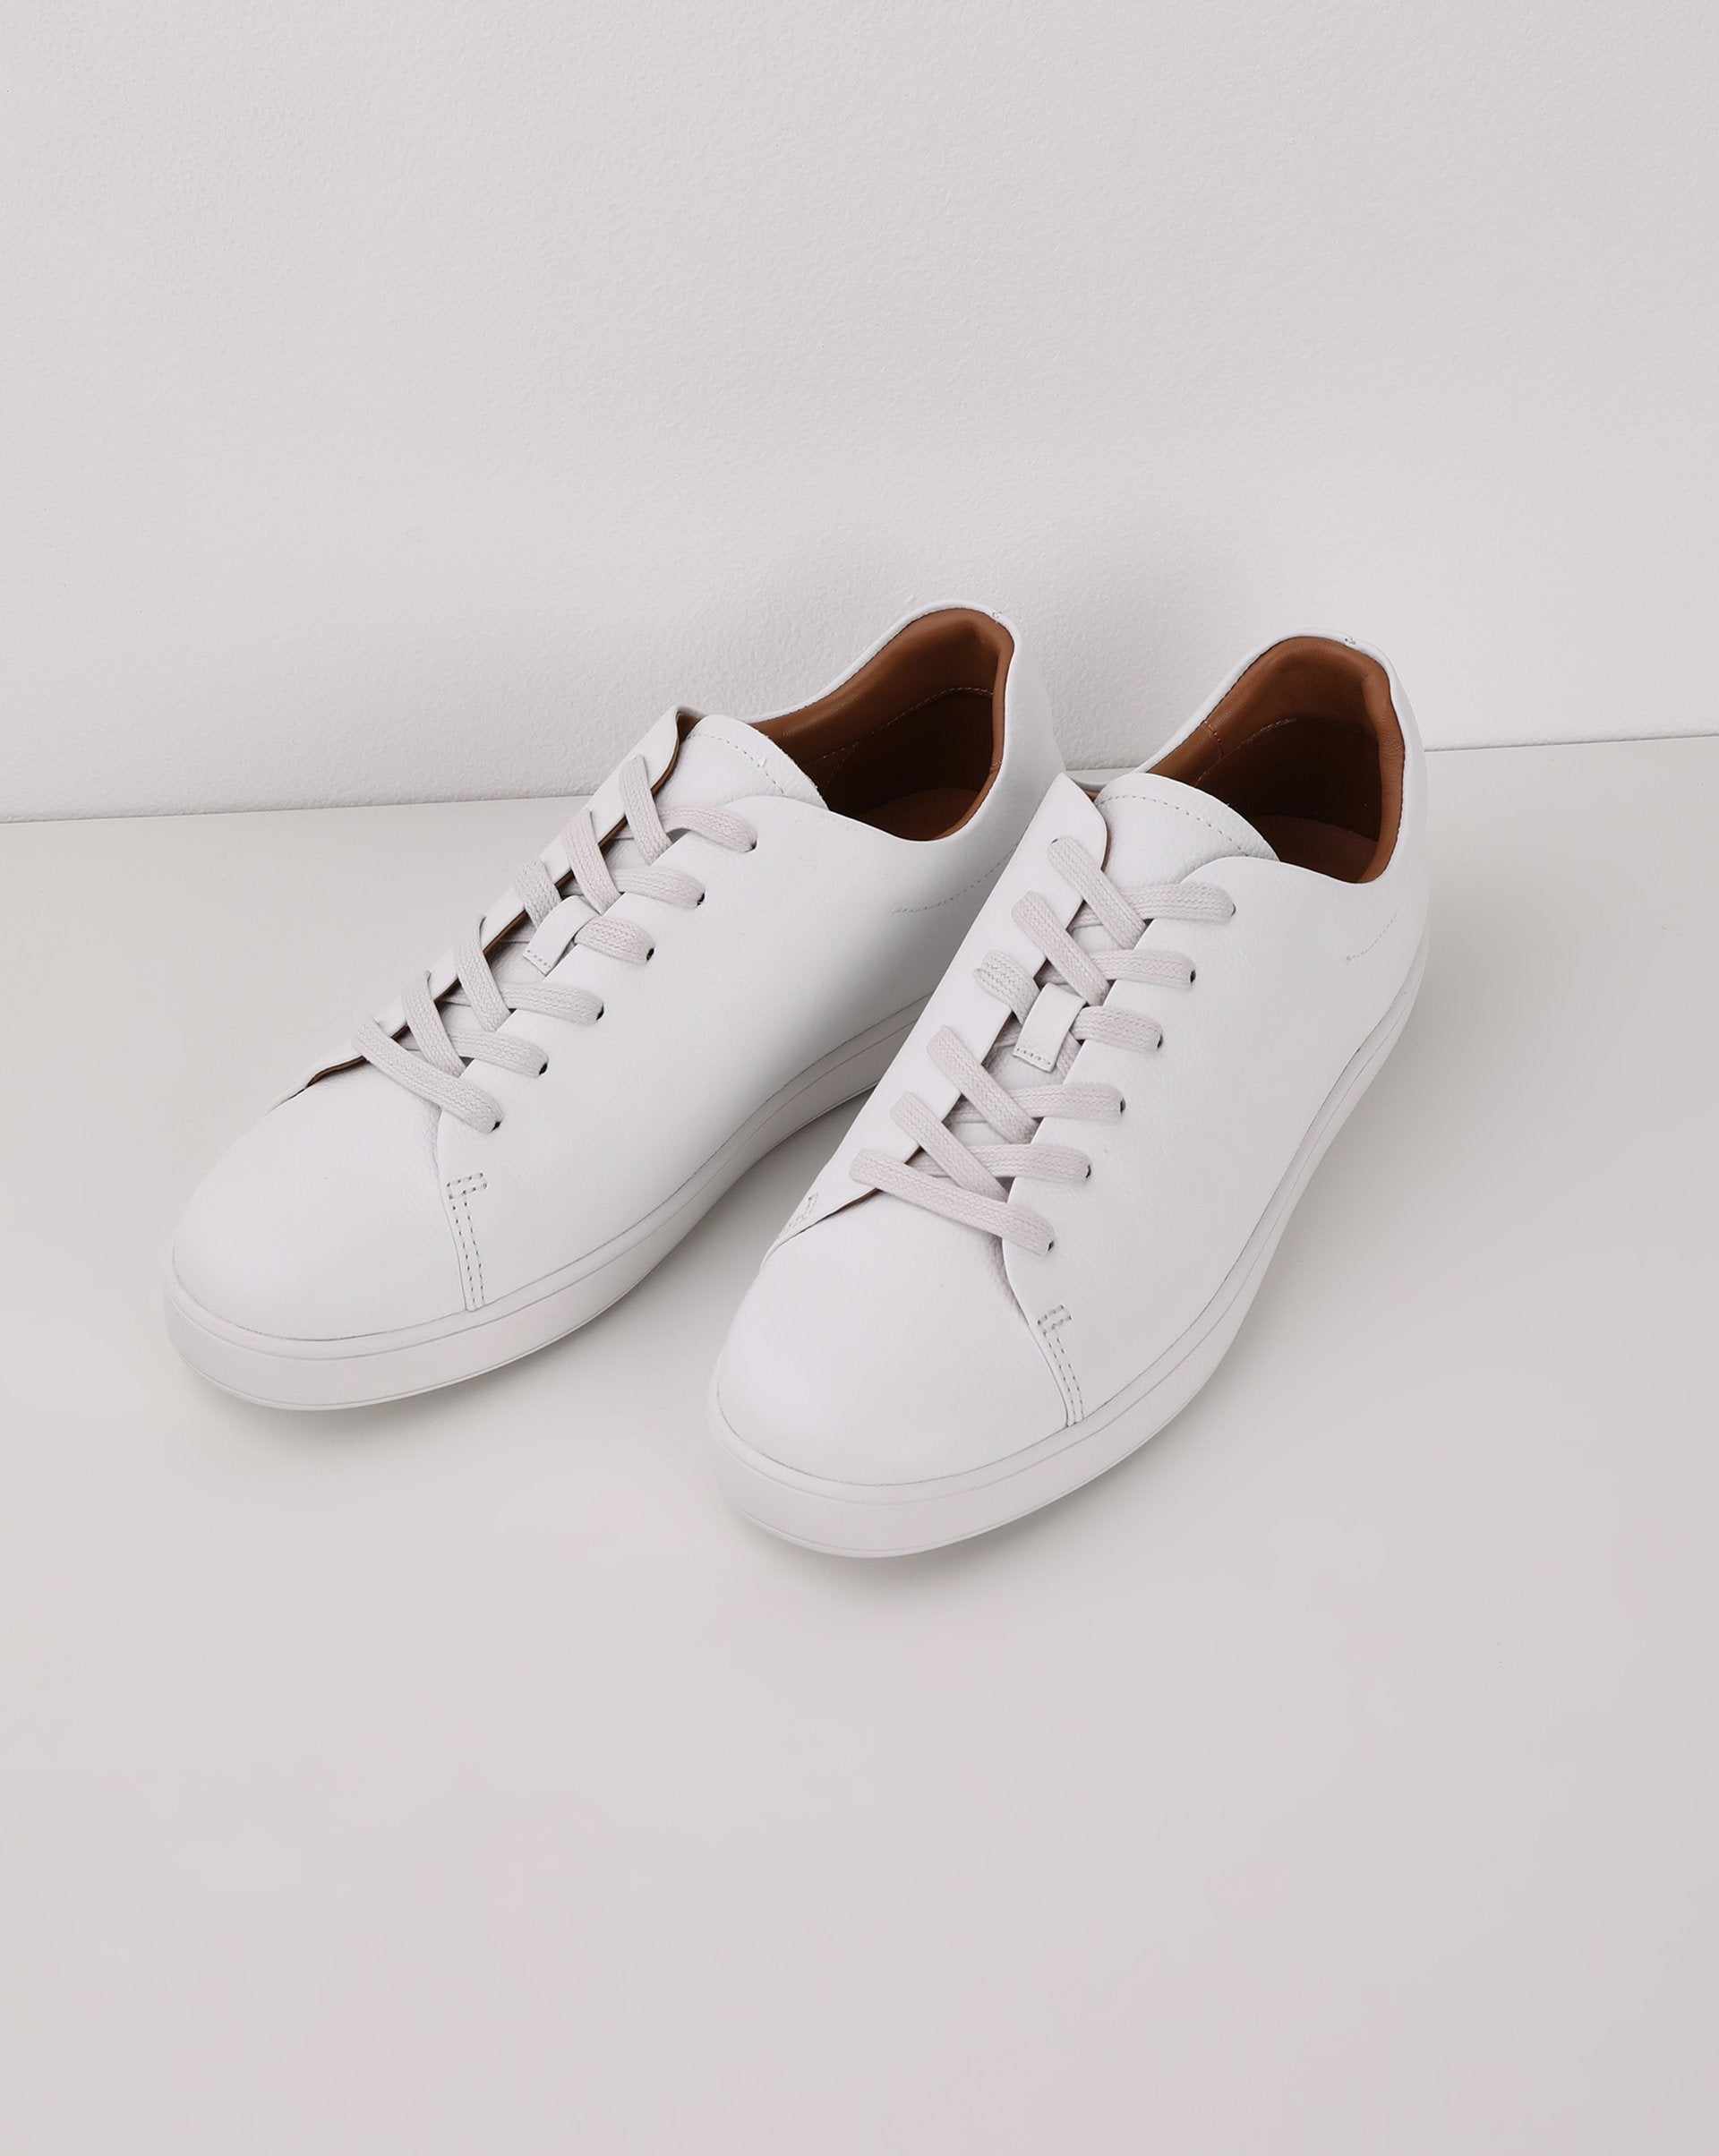 Grain leather sneakers - 12 STOREEZ